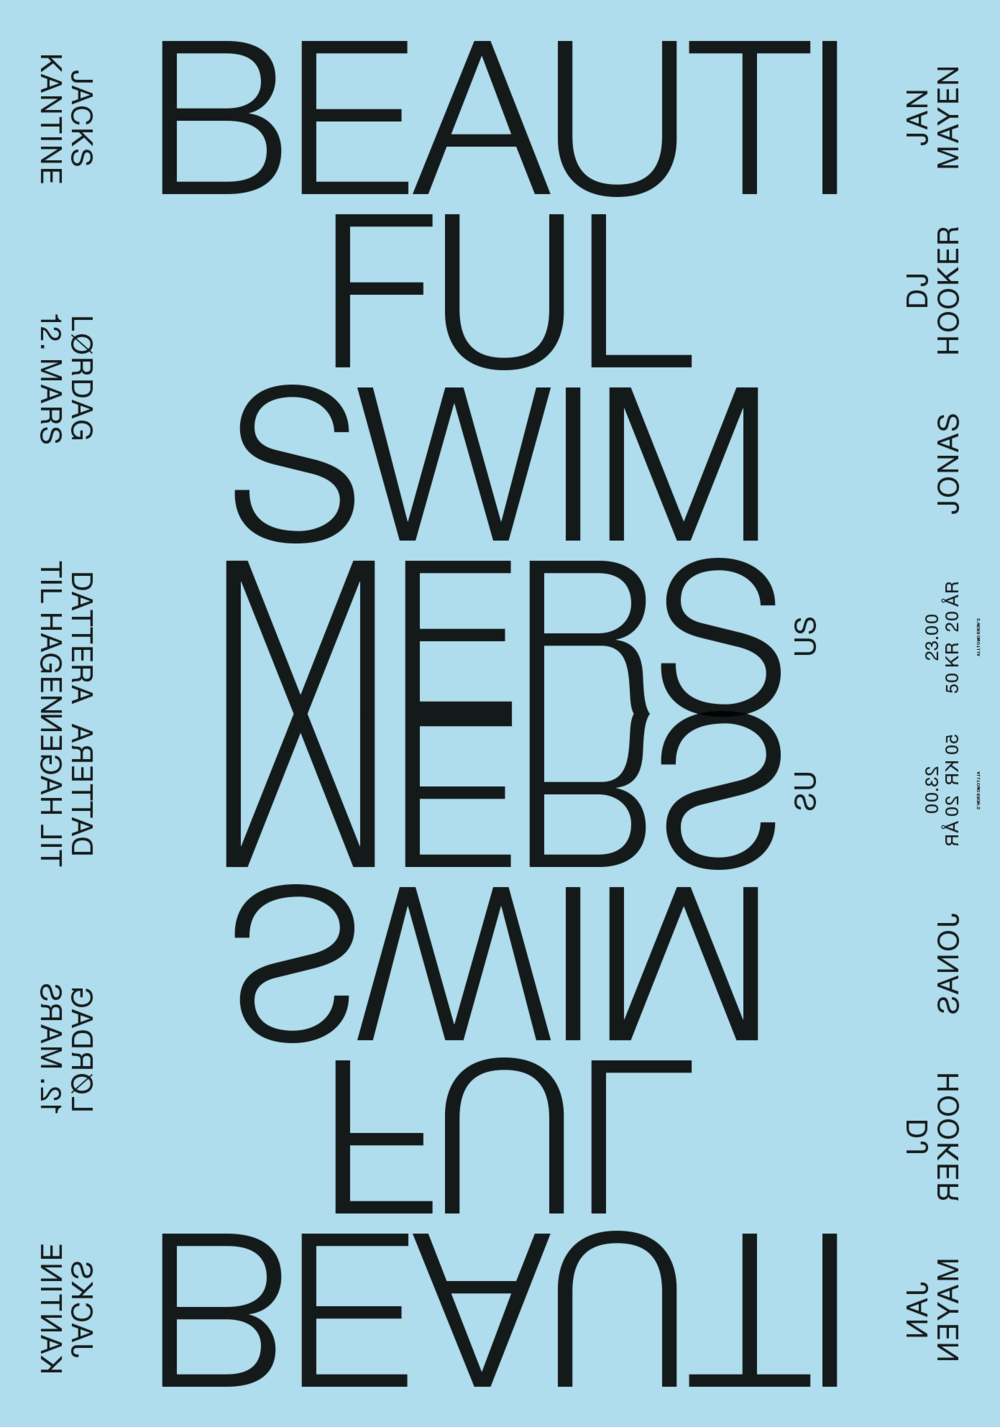 1.4_5097_jk_beautiful_swimmers_490x700_original.png